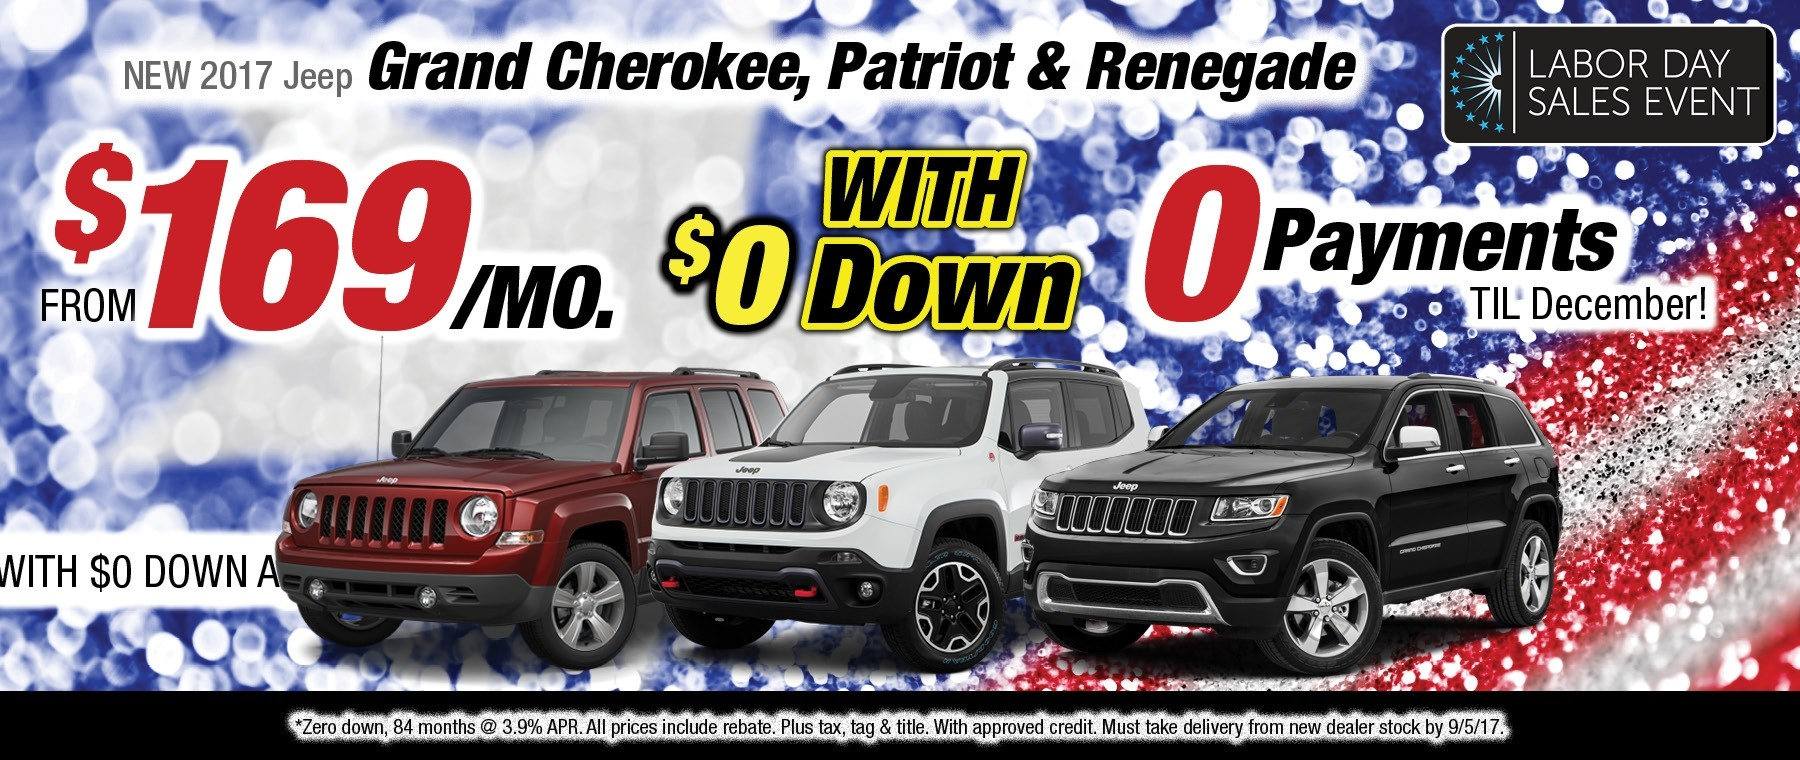 2017 Jeep Grand Cherokee, Patriot or Renegade Lease Special available at Thomson Jeep in Thomson, GA